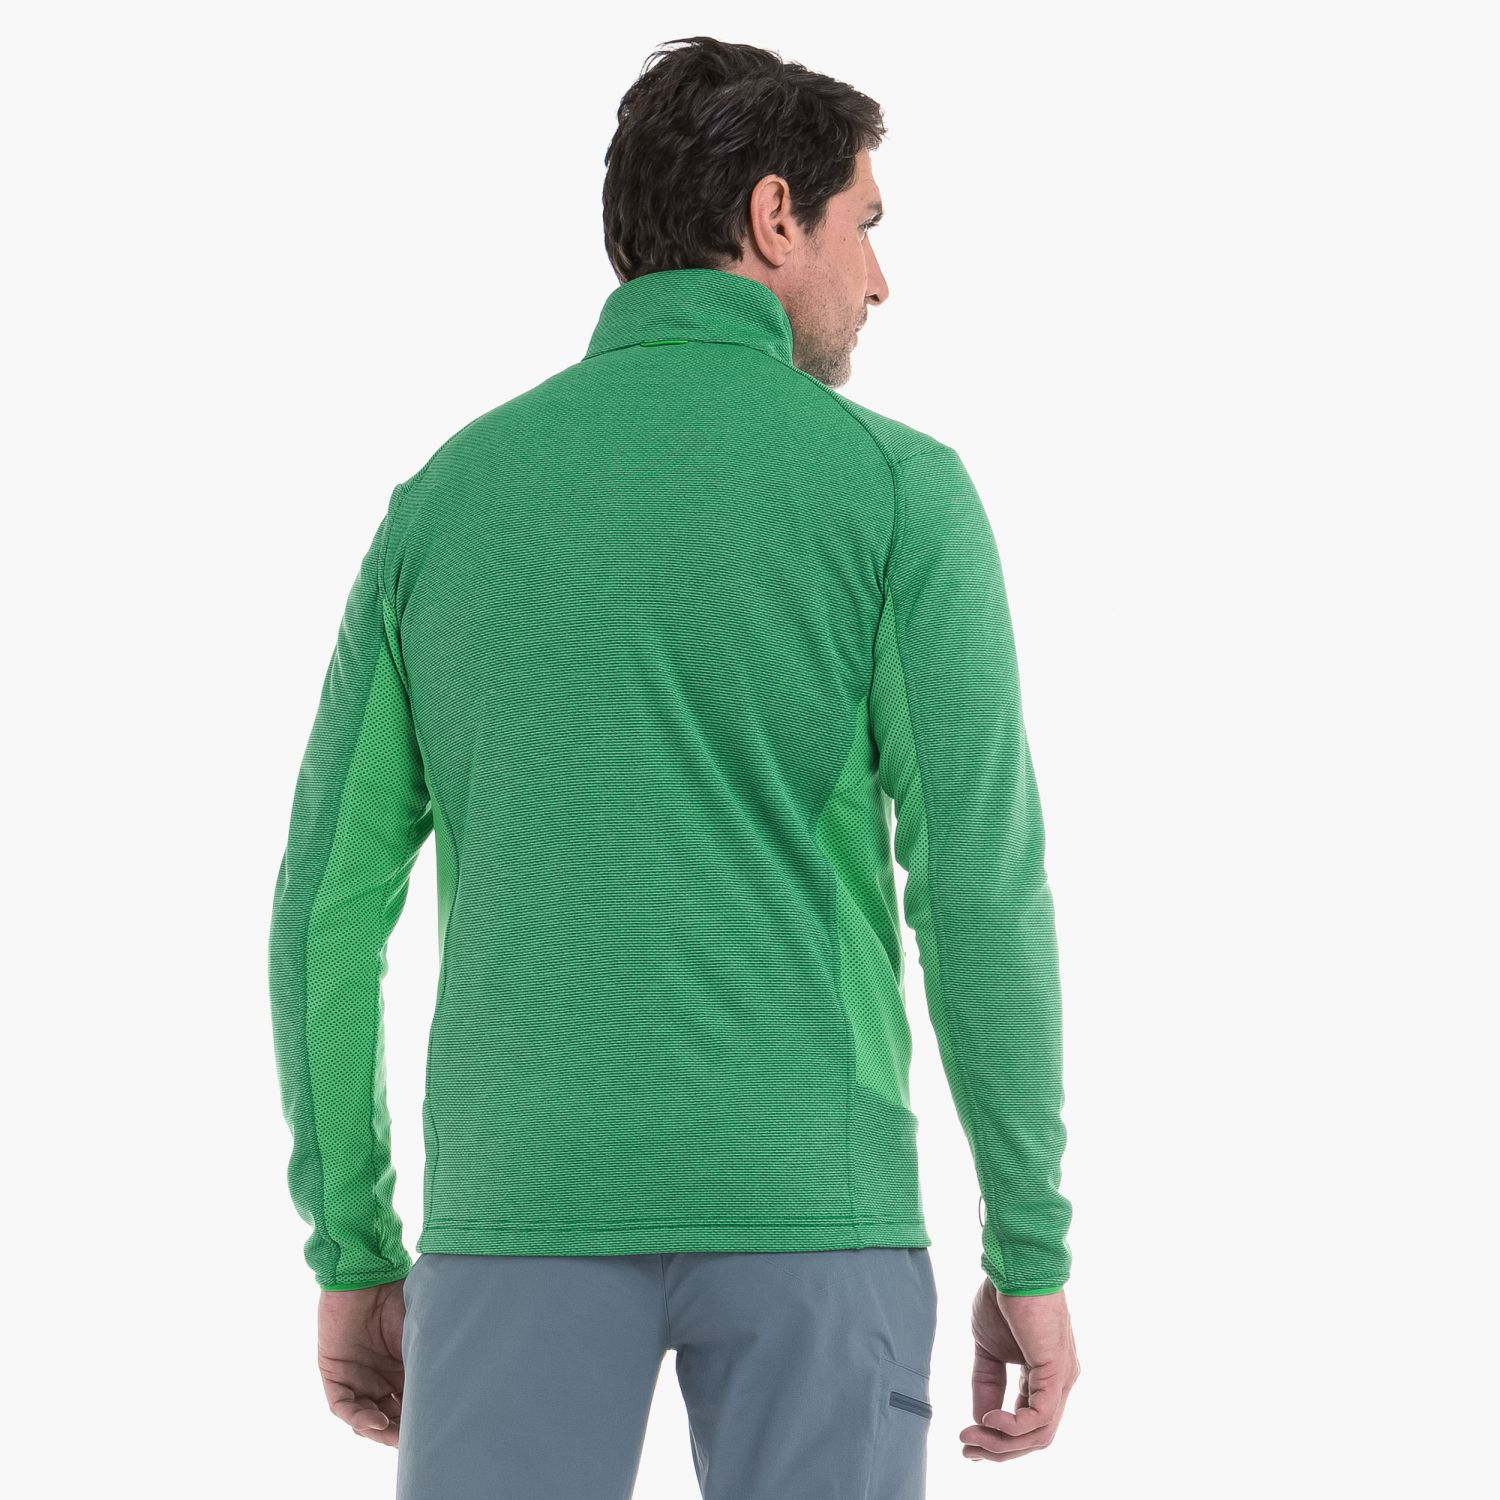 ZipIn! Fleece Columbus2